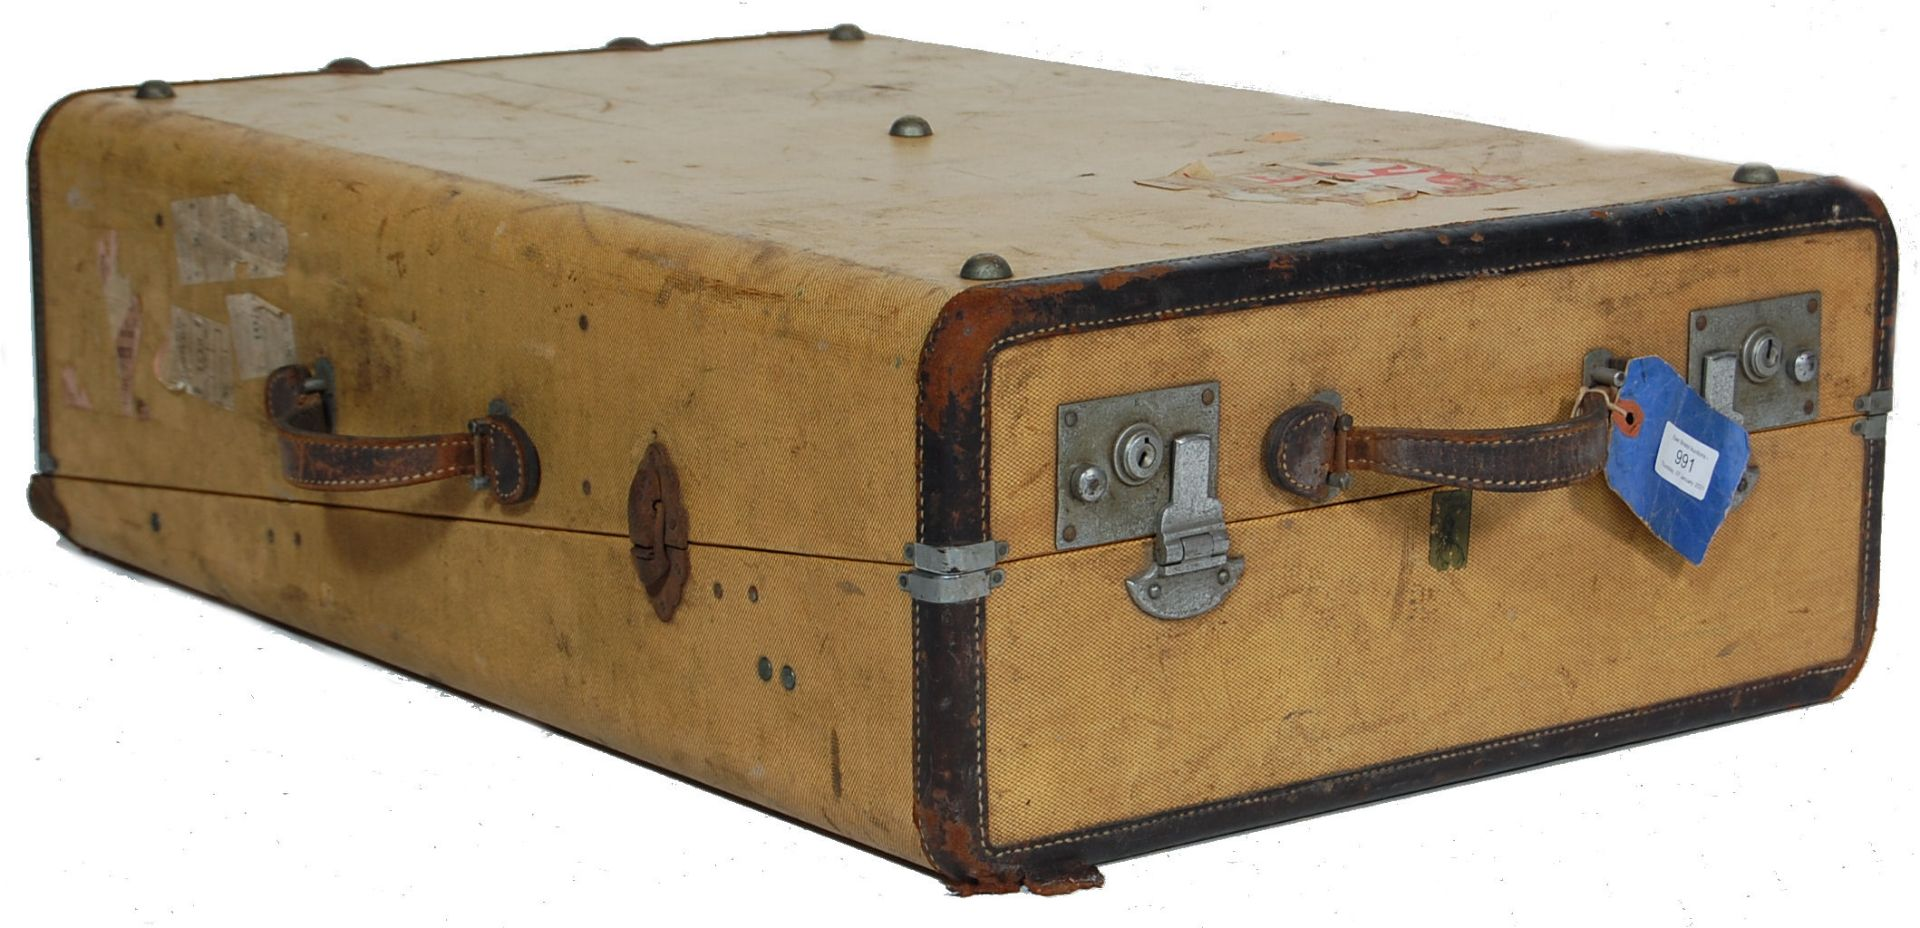 COLLECTION OF THREE EARLY 20TH CENTURY STEAMER TRUNKS - Image 2 of 12